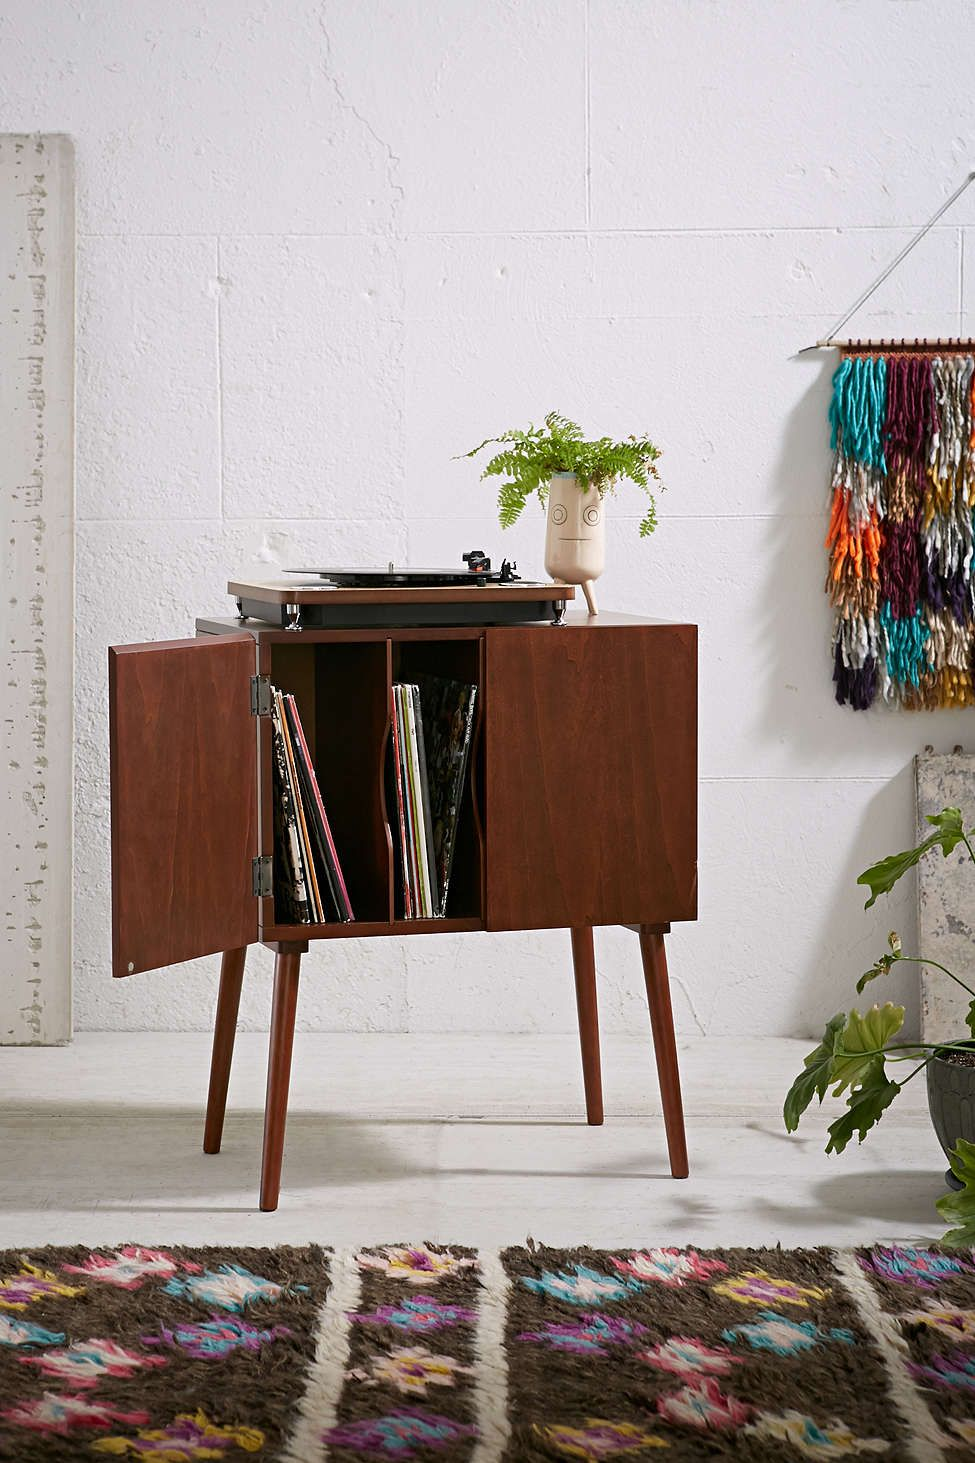 Klassische Sofas You Can Assemble Simple And Classy Ways To Store Your Vinyl Record Collection